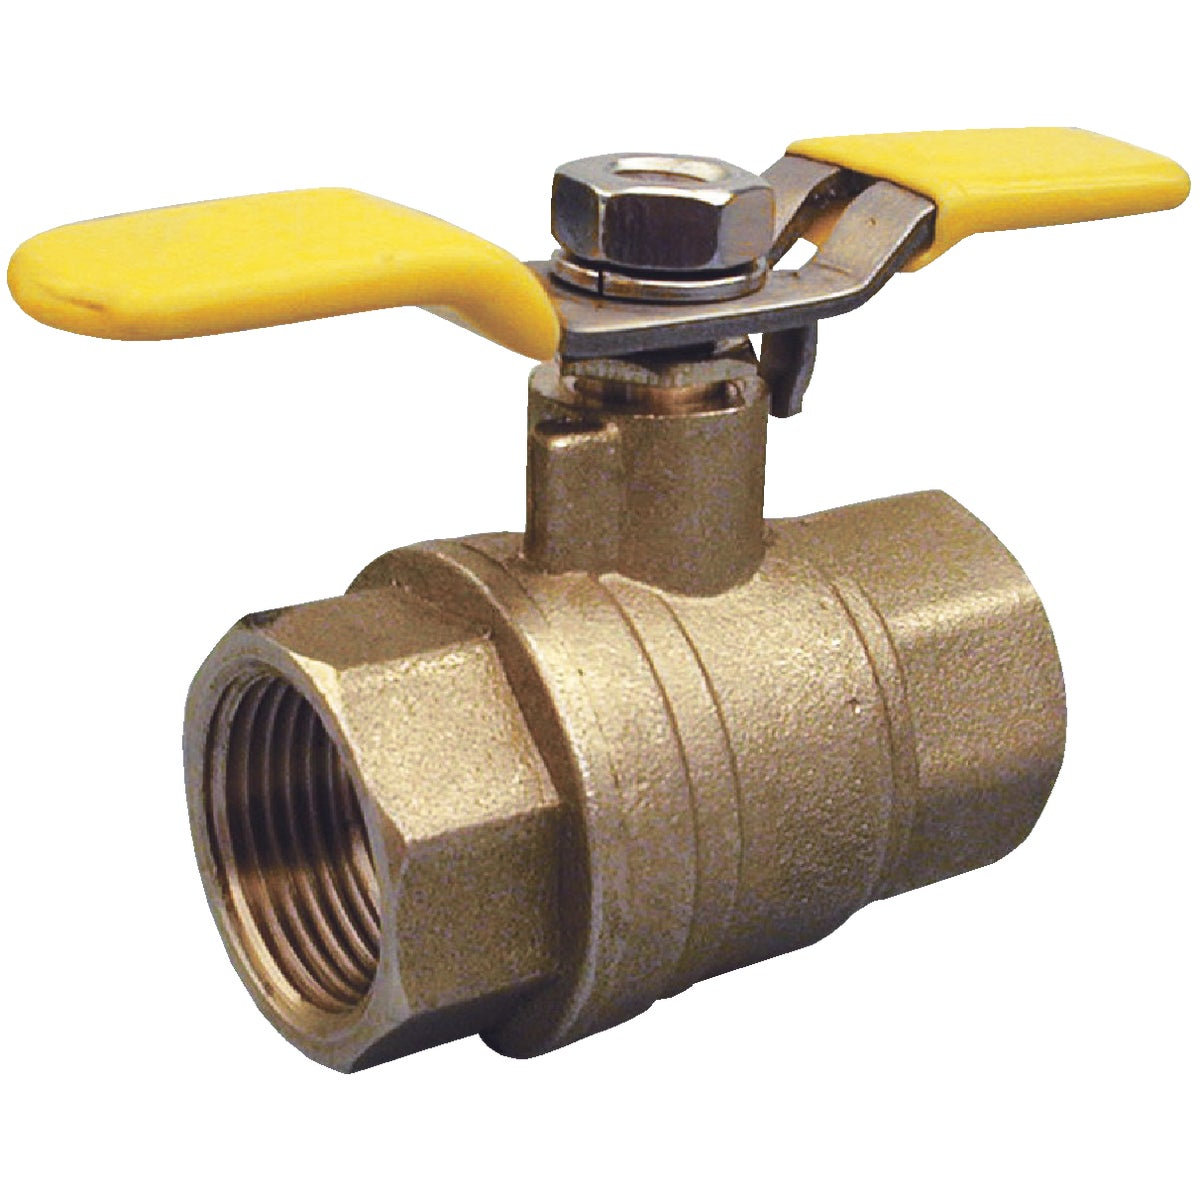 "1"" THREADED BALL VALVE - 107-825TNL by Mueller B K"